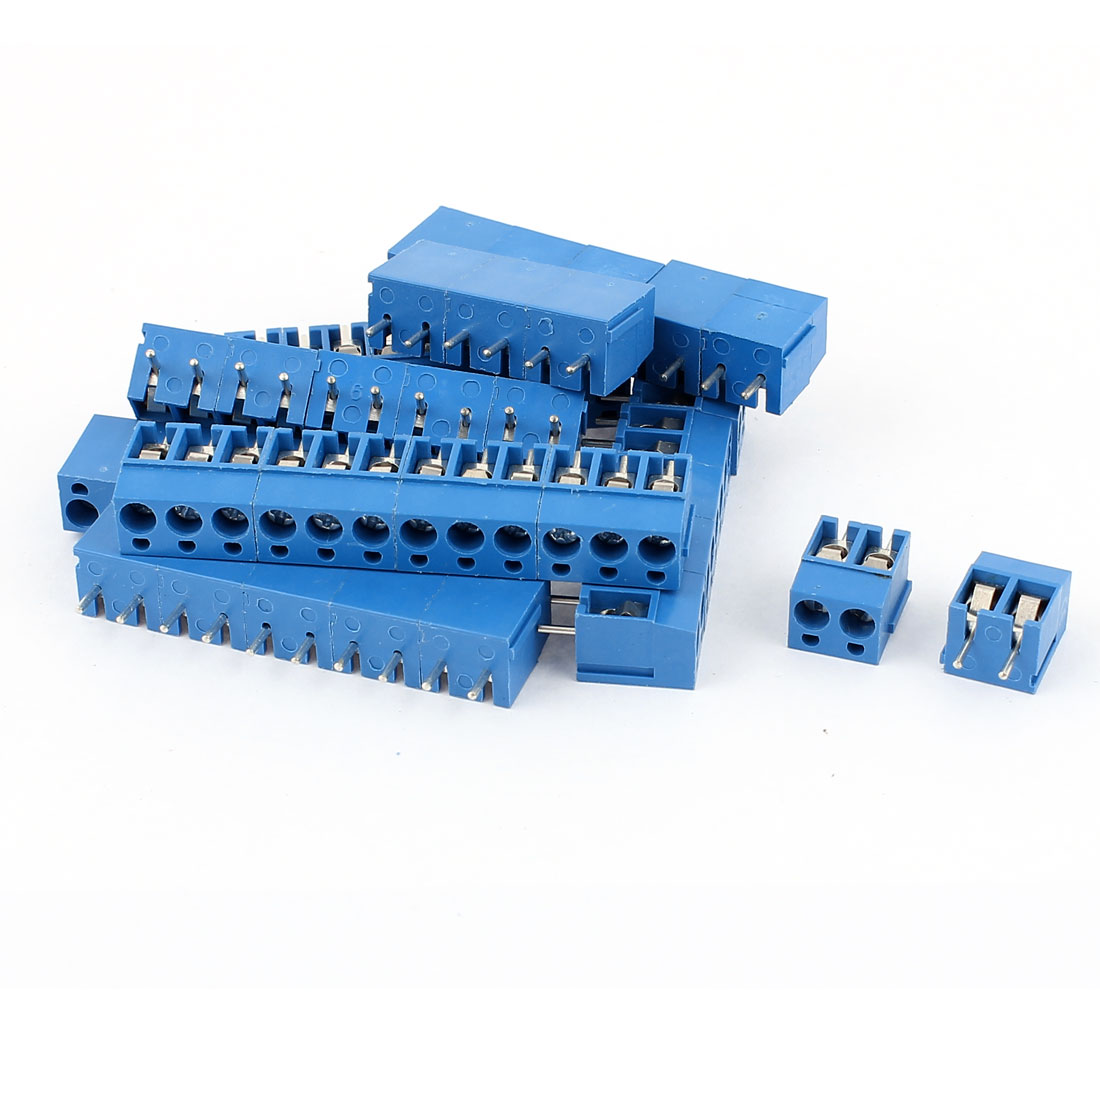 39Pcs 5.08mm Pitch 2/3Pin PCB Mount Power Screw Terminal Block Connector